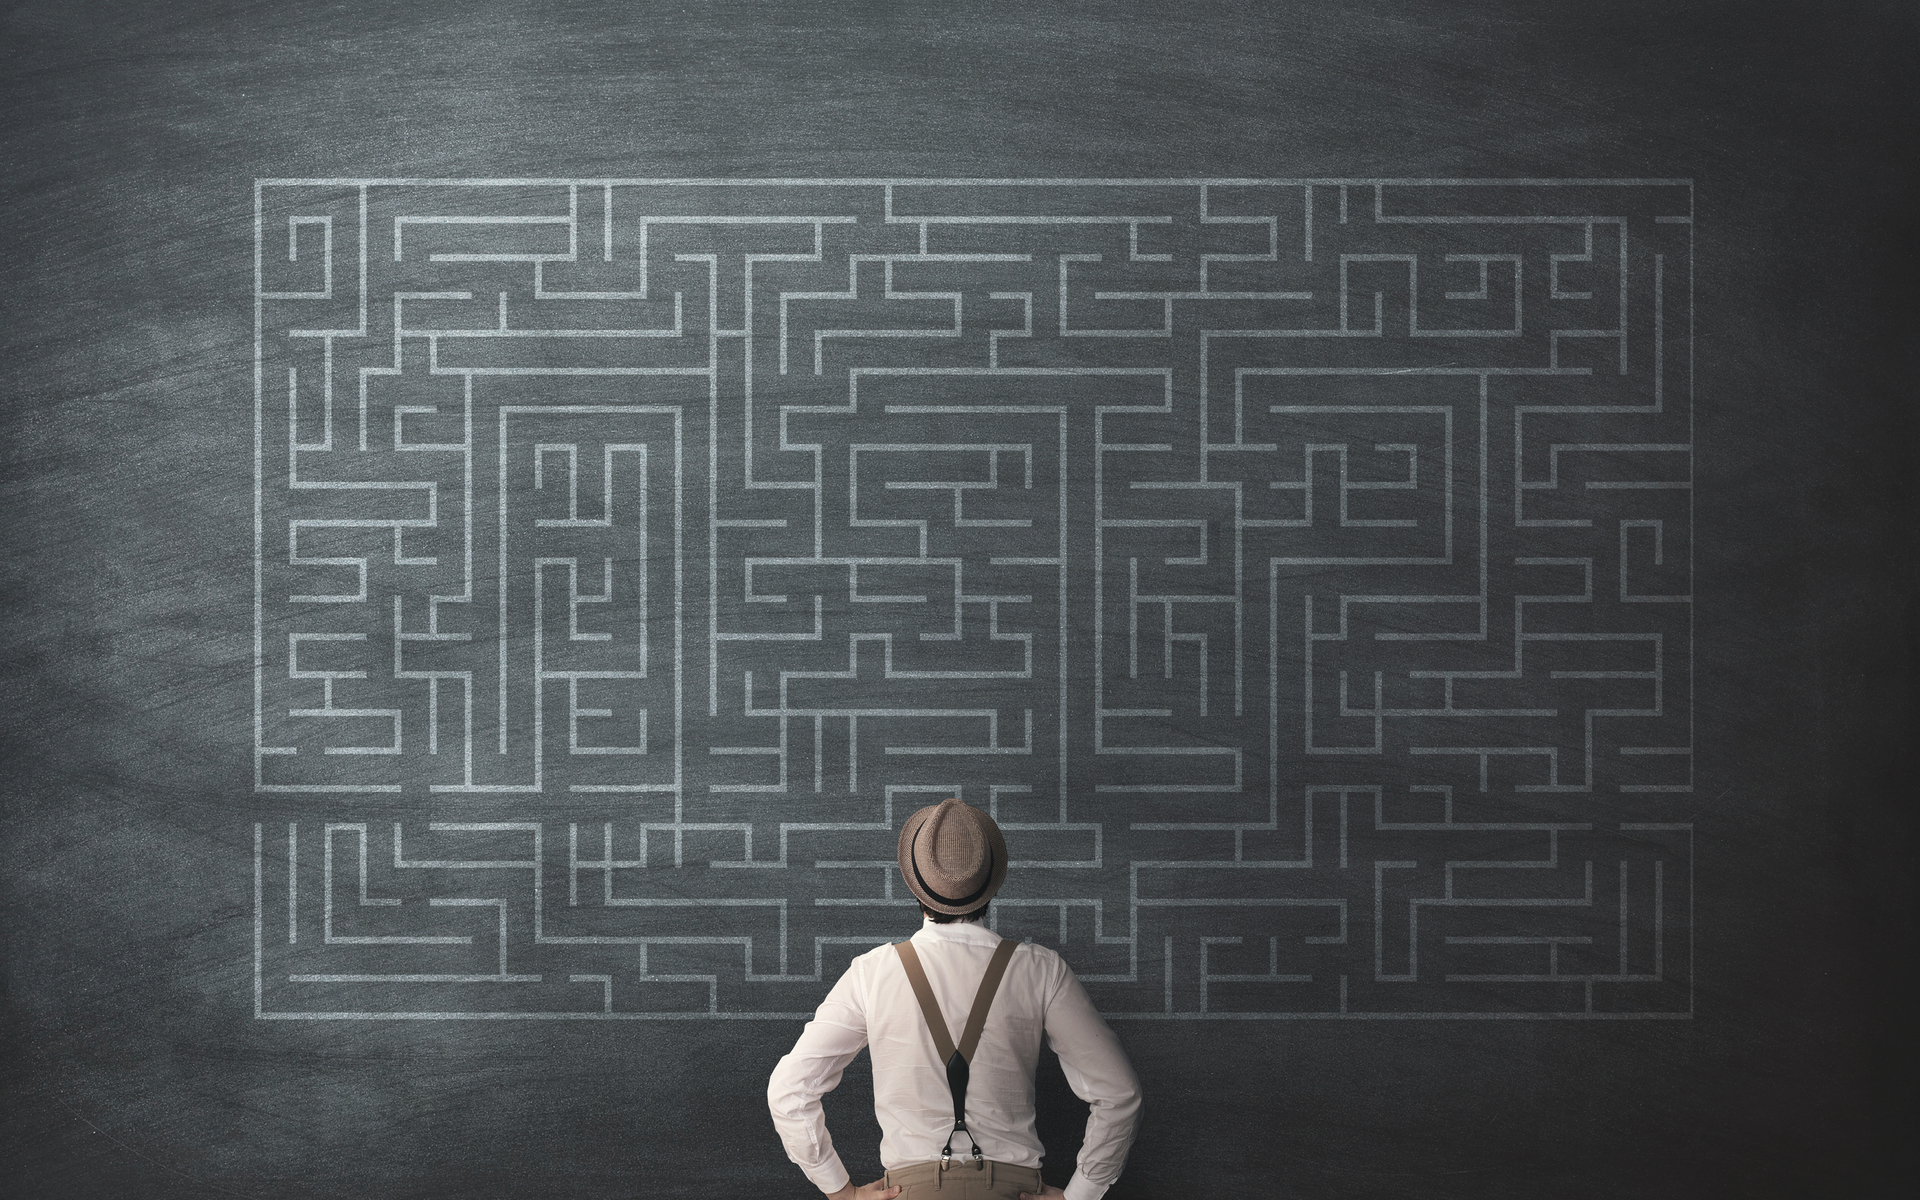 Bitcoin Puzzle Worth 2.1 BTC STILL Unsolved, Find New Clues Here